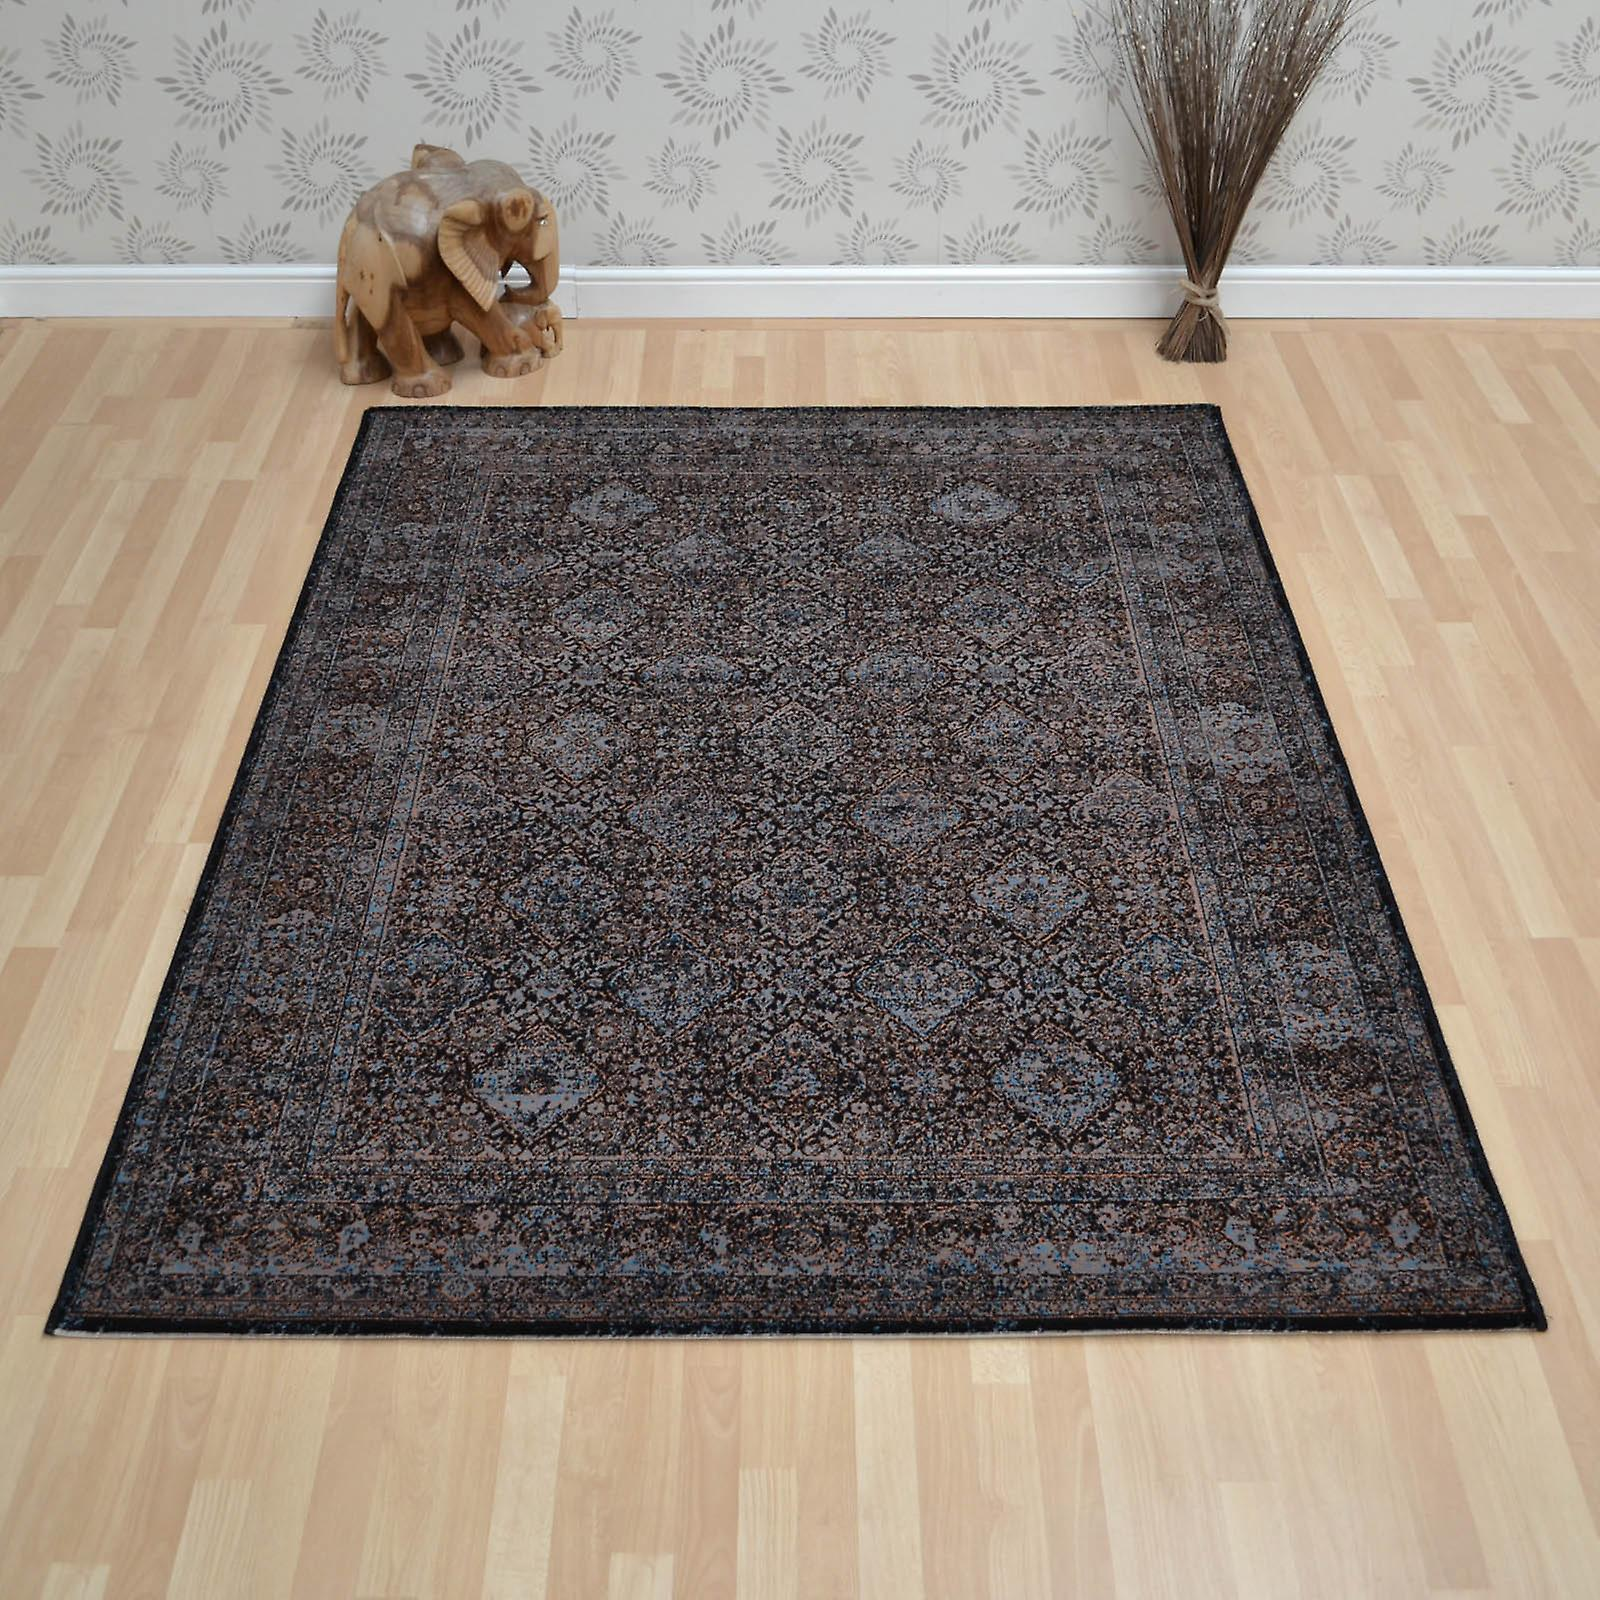 Lano Imperial Rugs 1951 678 In Marine